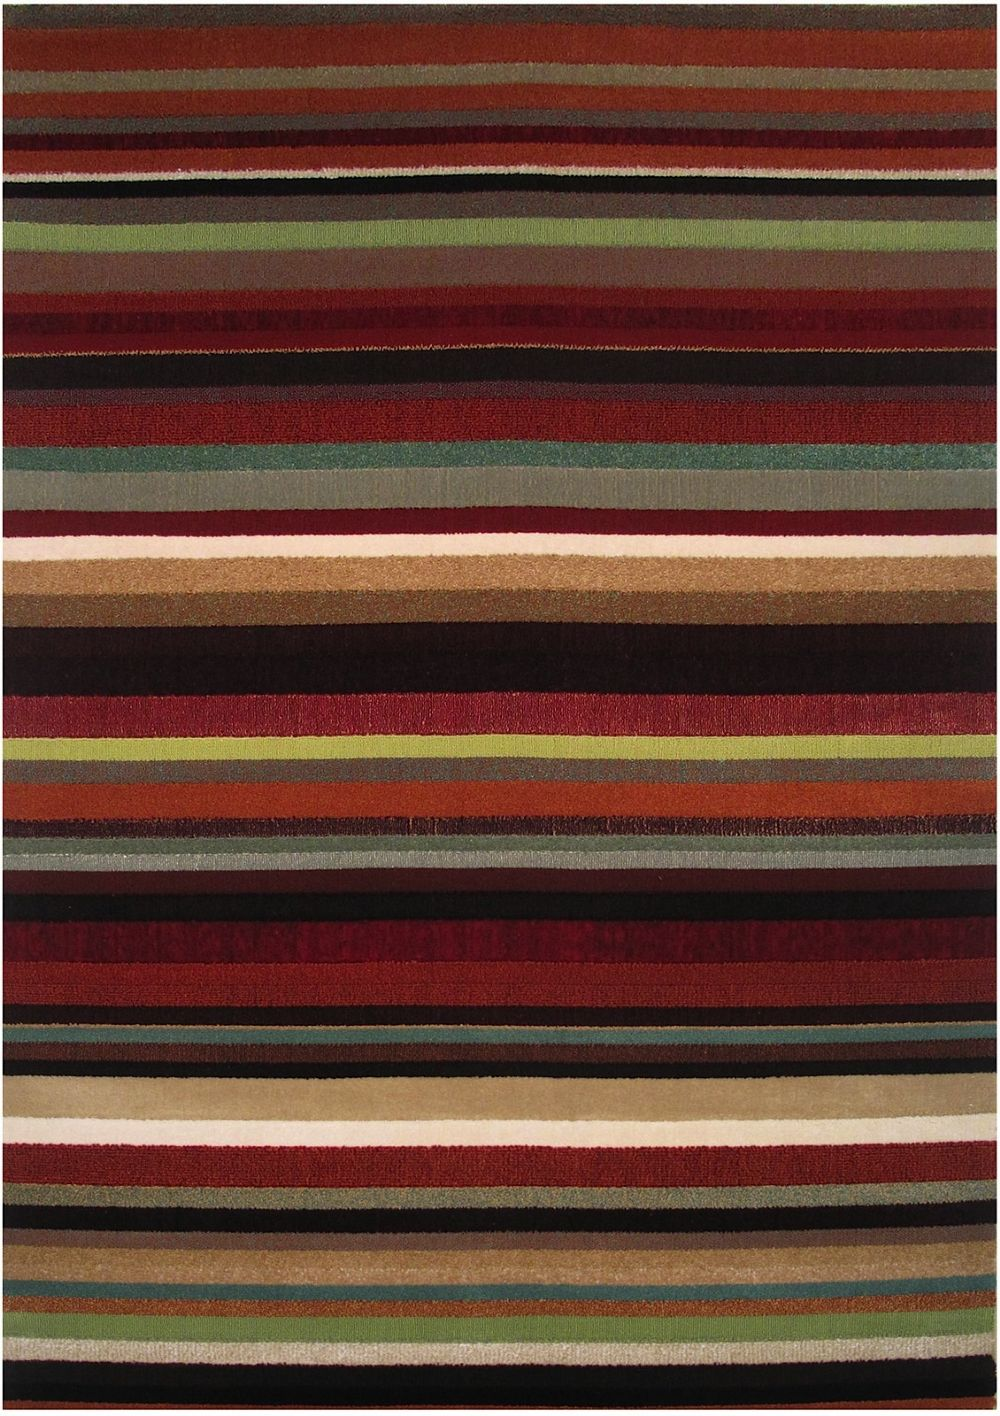 la rugs swing solid/striped area rug collection